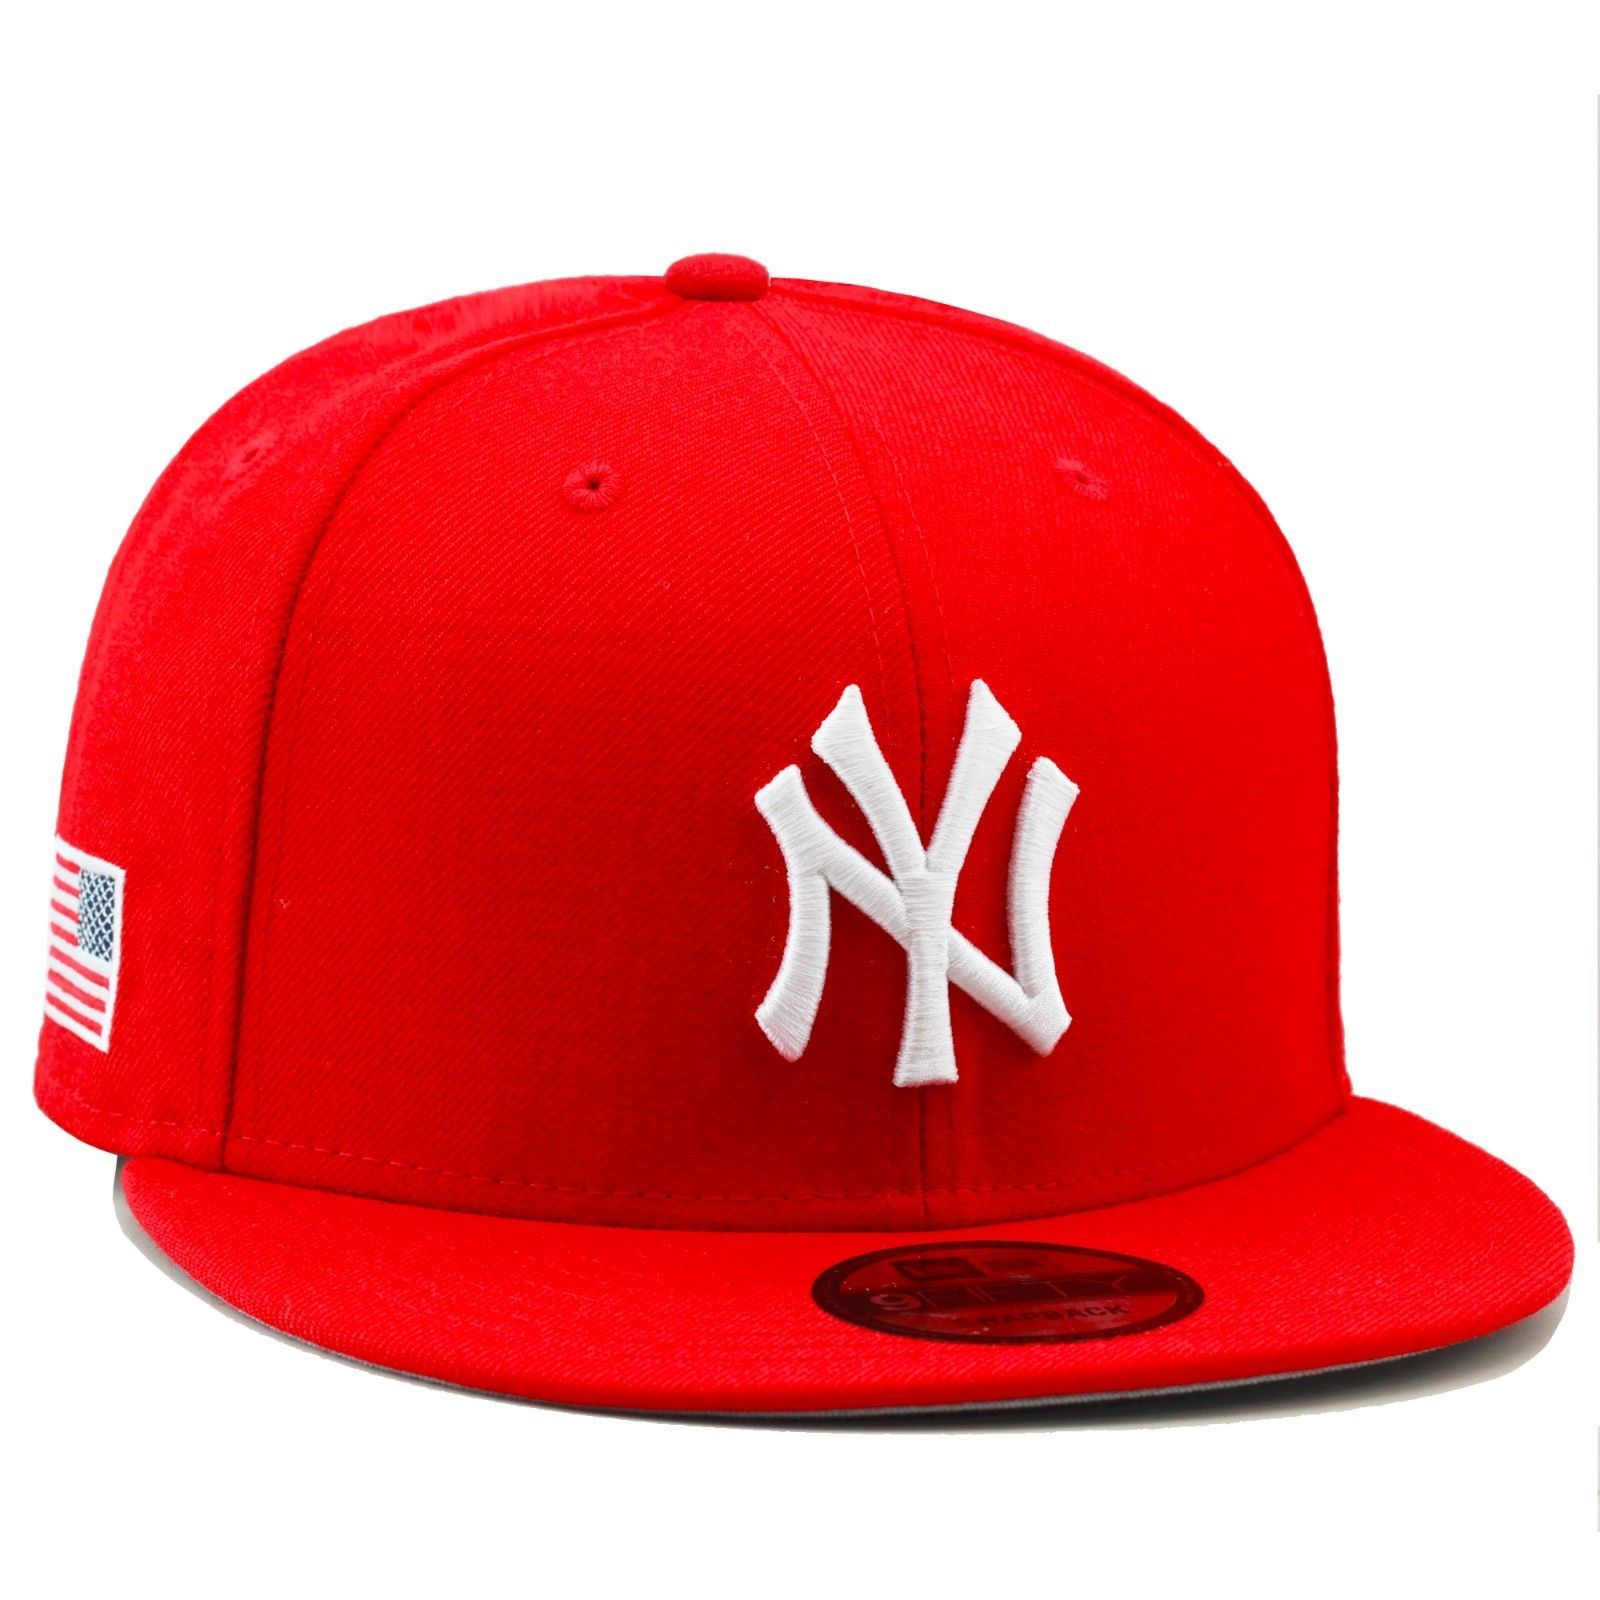 New Era New York Yankees Snapback Hat All RED White USA US American ... 7b8bfe53378